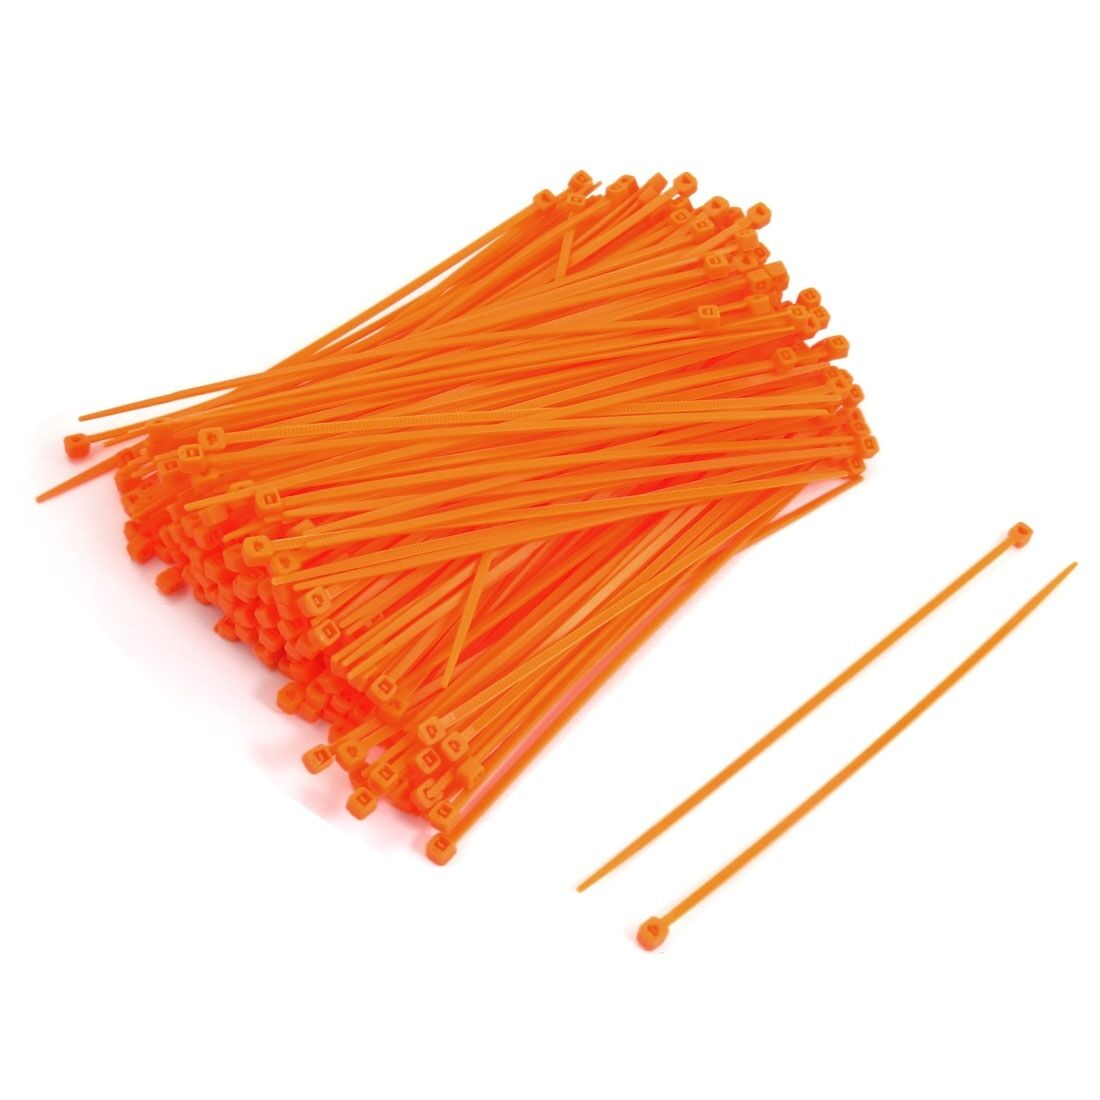 Cable Ties 4.8mm x 370mm Nylon Tie-Wrap Orange !! Pack of 100 units !!